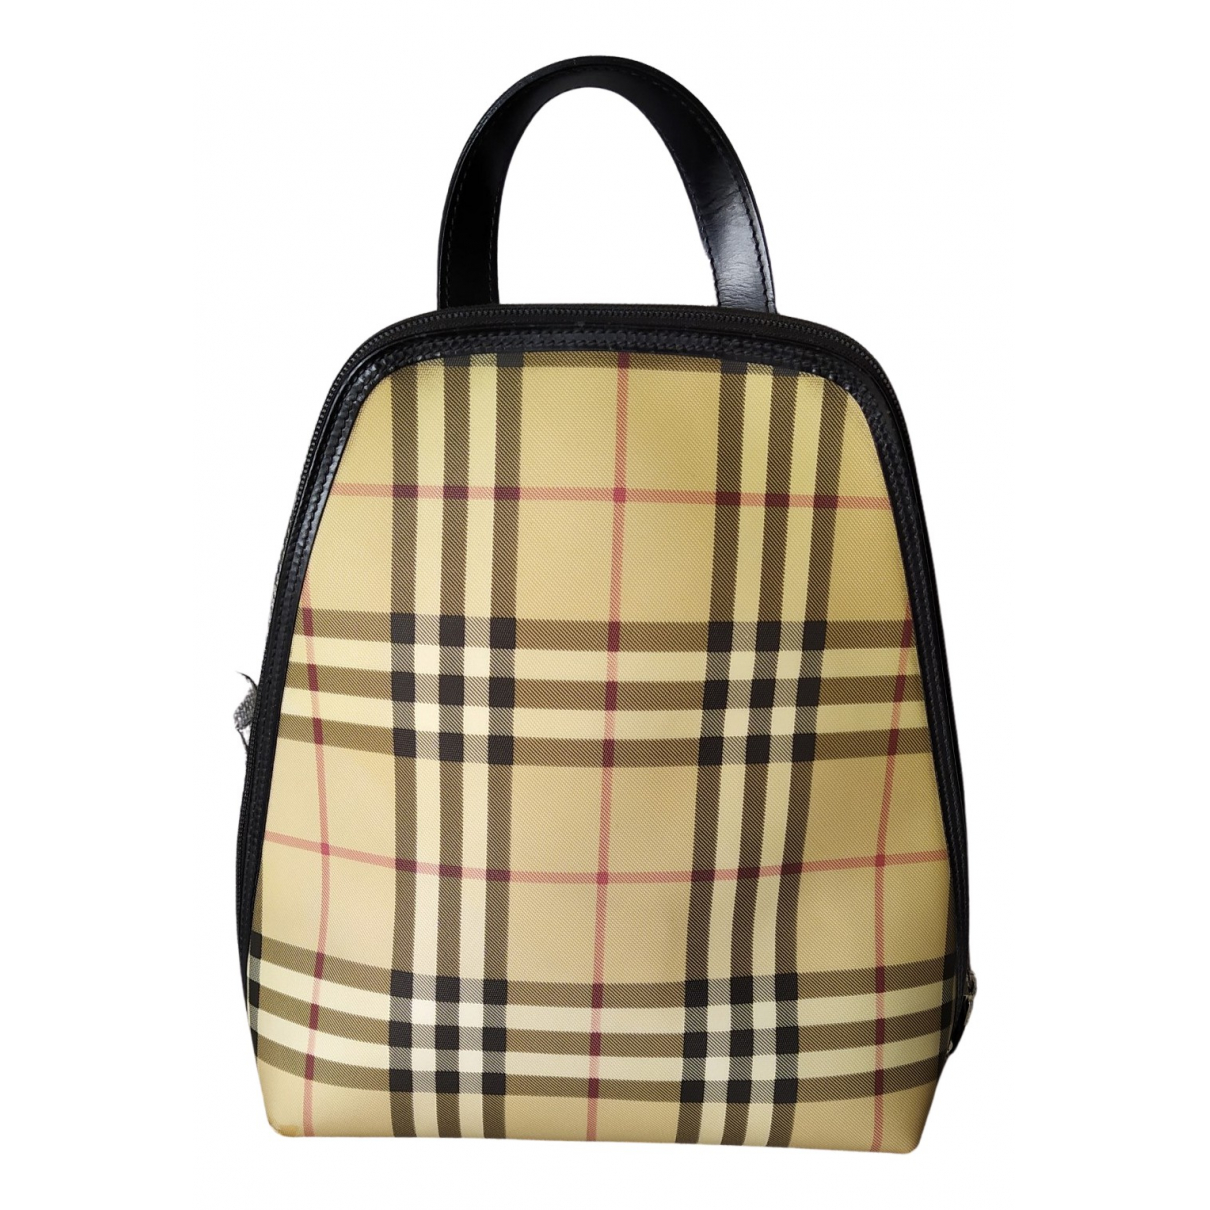 Burberry N Multicolour backpack for Women N